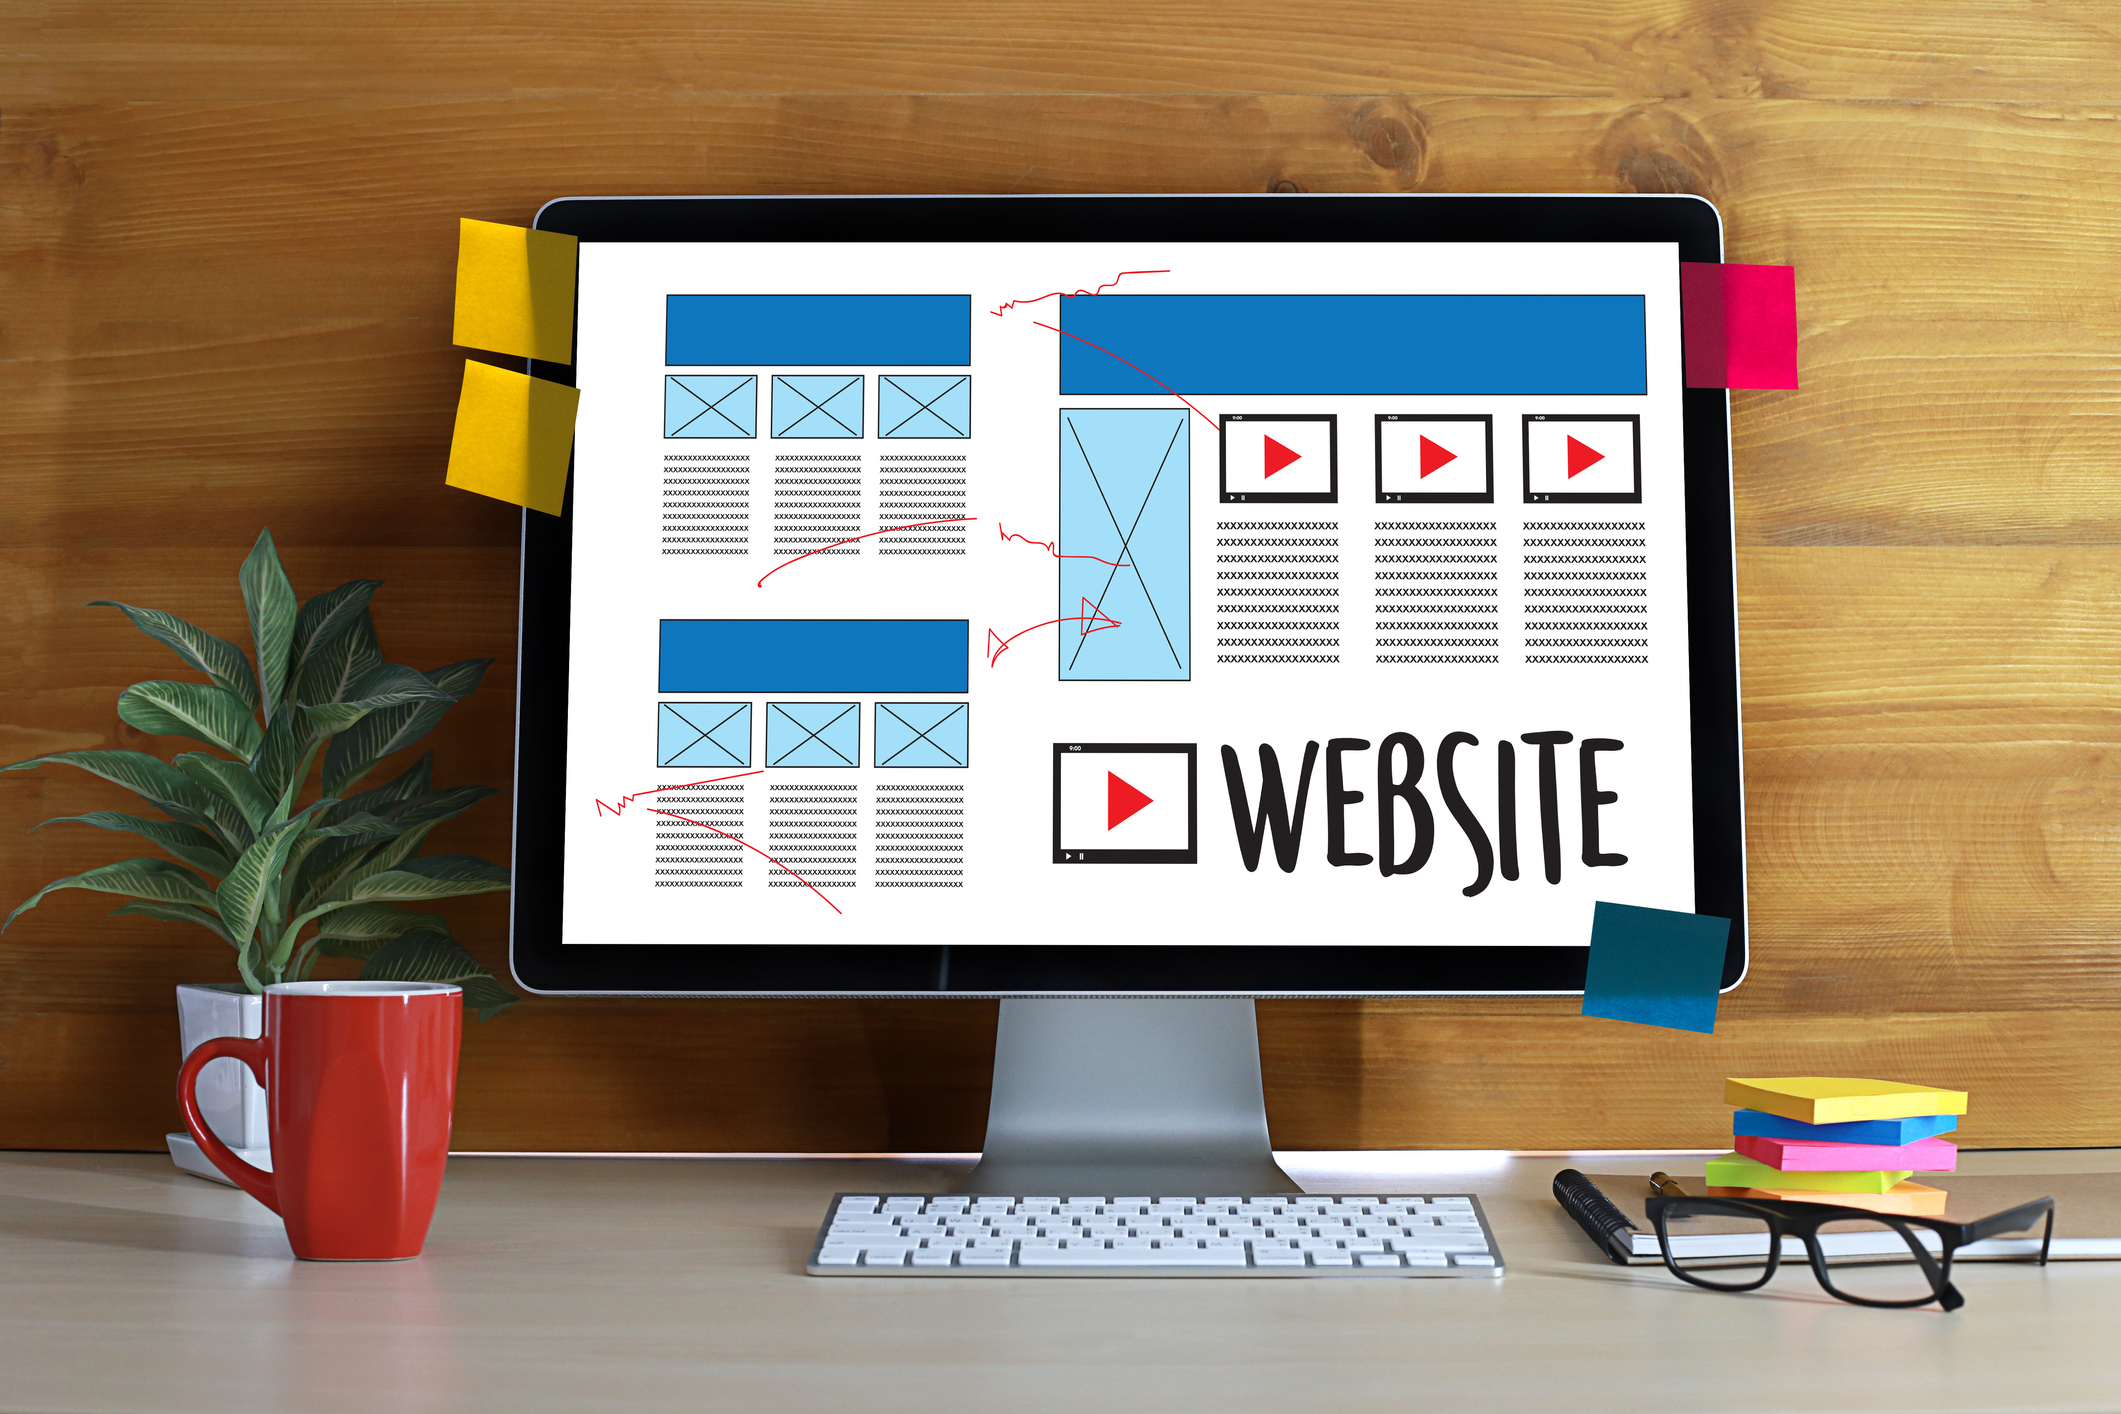 3 Crucial Steps to Get Ready for Website Content Population